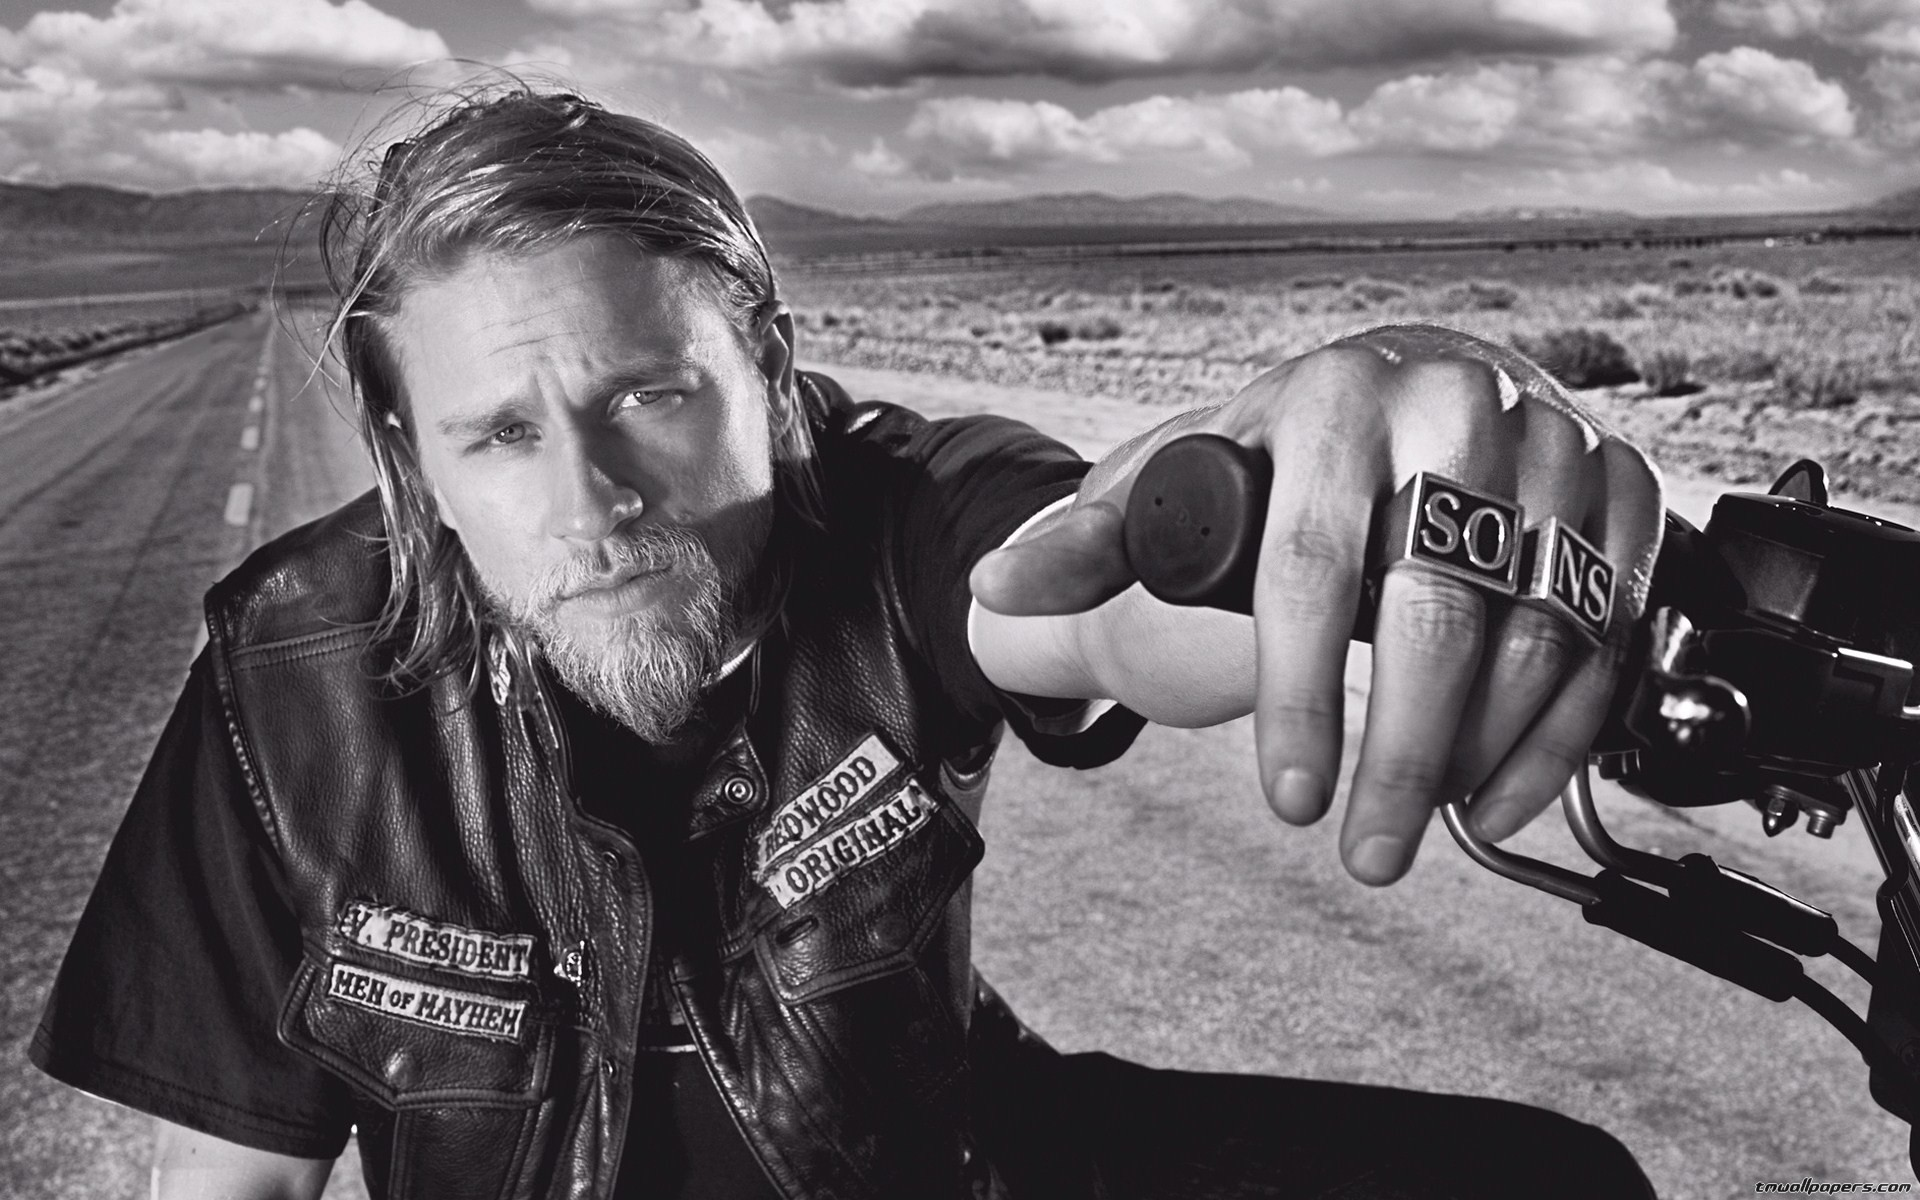 Sons Of Anarchy Wallpaper 1440x900 Px, - Season 4 Sons Of Anarchy Jax , HD Wallpaper & Backgrounds